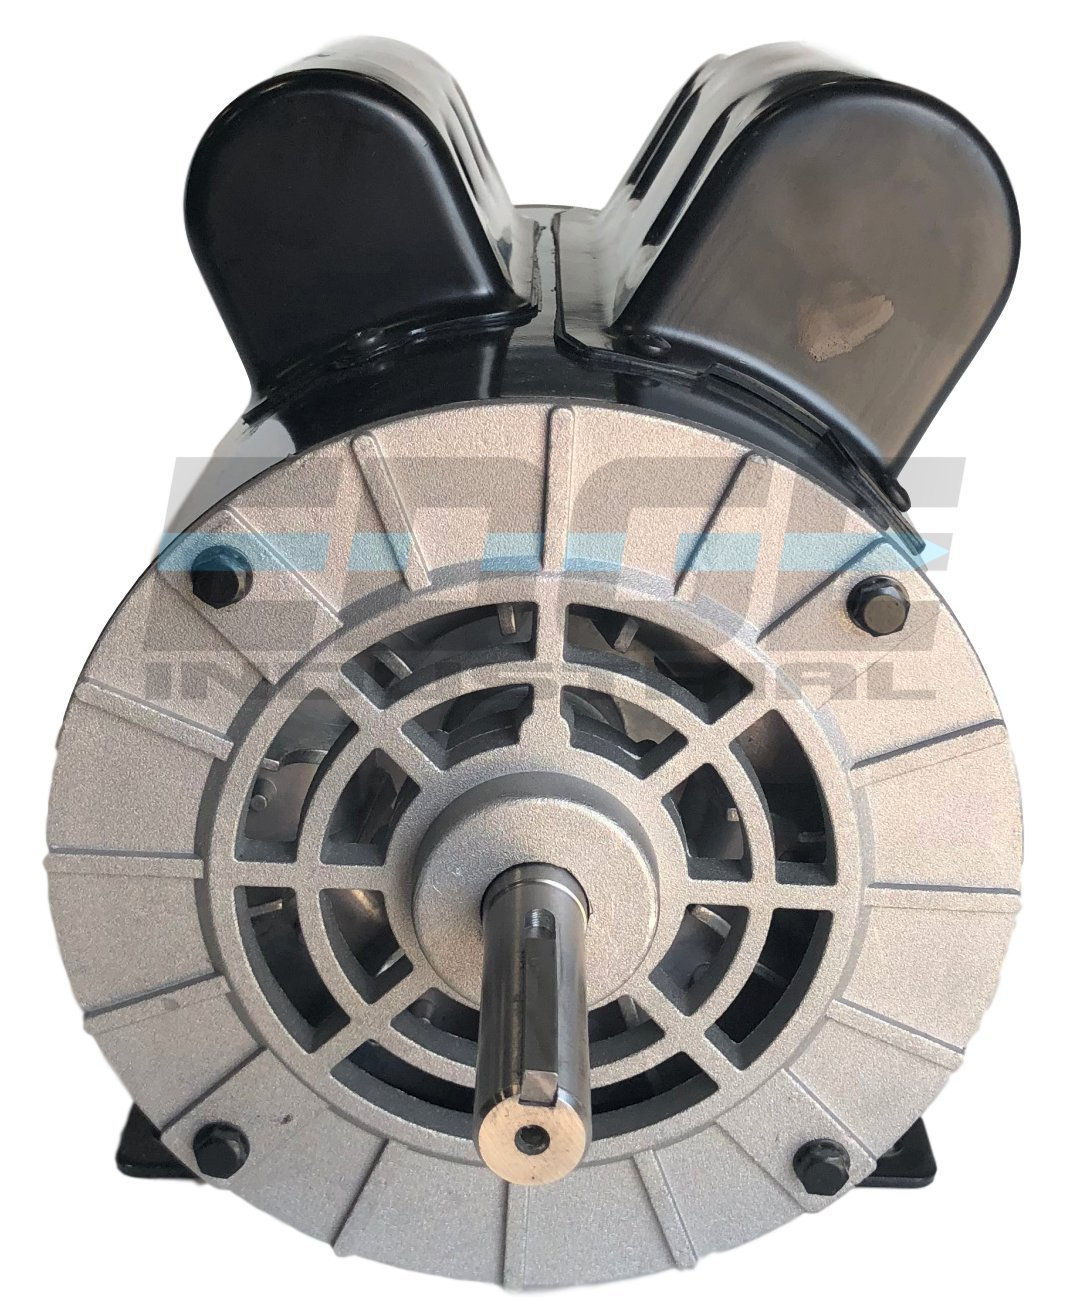 NEW 2 HP SPL Compressor Duty Electric Motor, 3450 RPM, 56 Frame, 5/8'' Shaft Diameter,120/240 VOLT by EDGE INDUSTRIAL EMZ (Image #5)